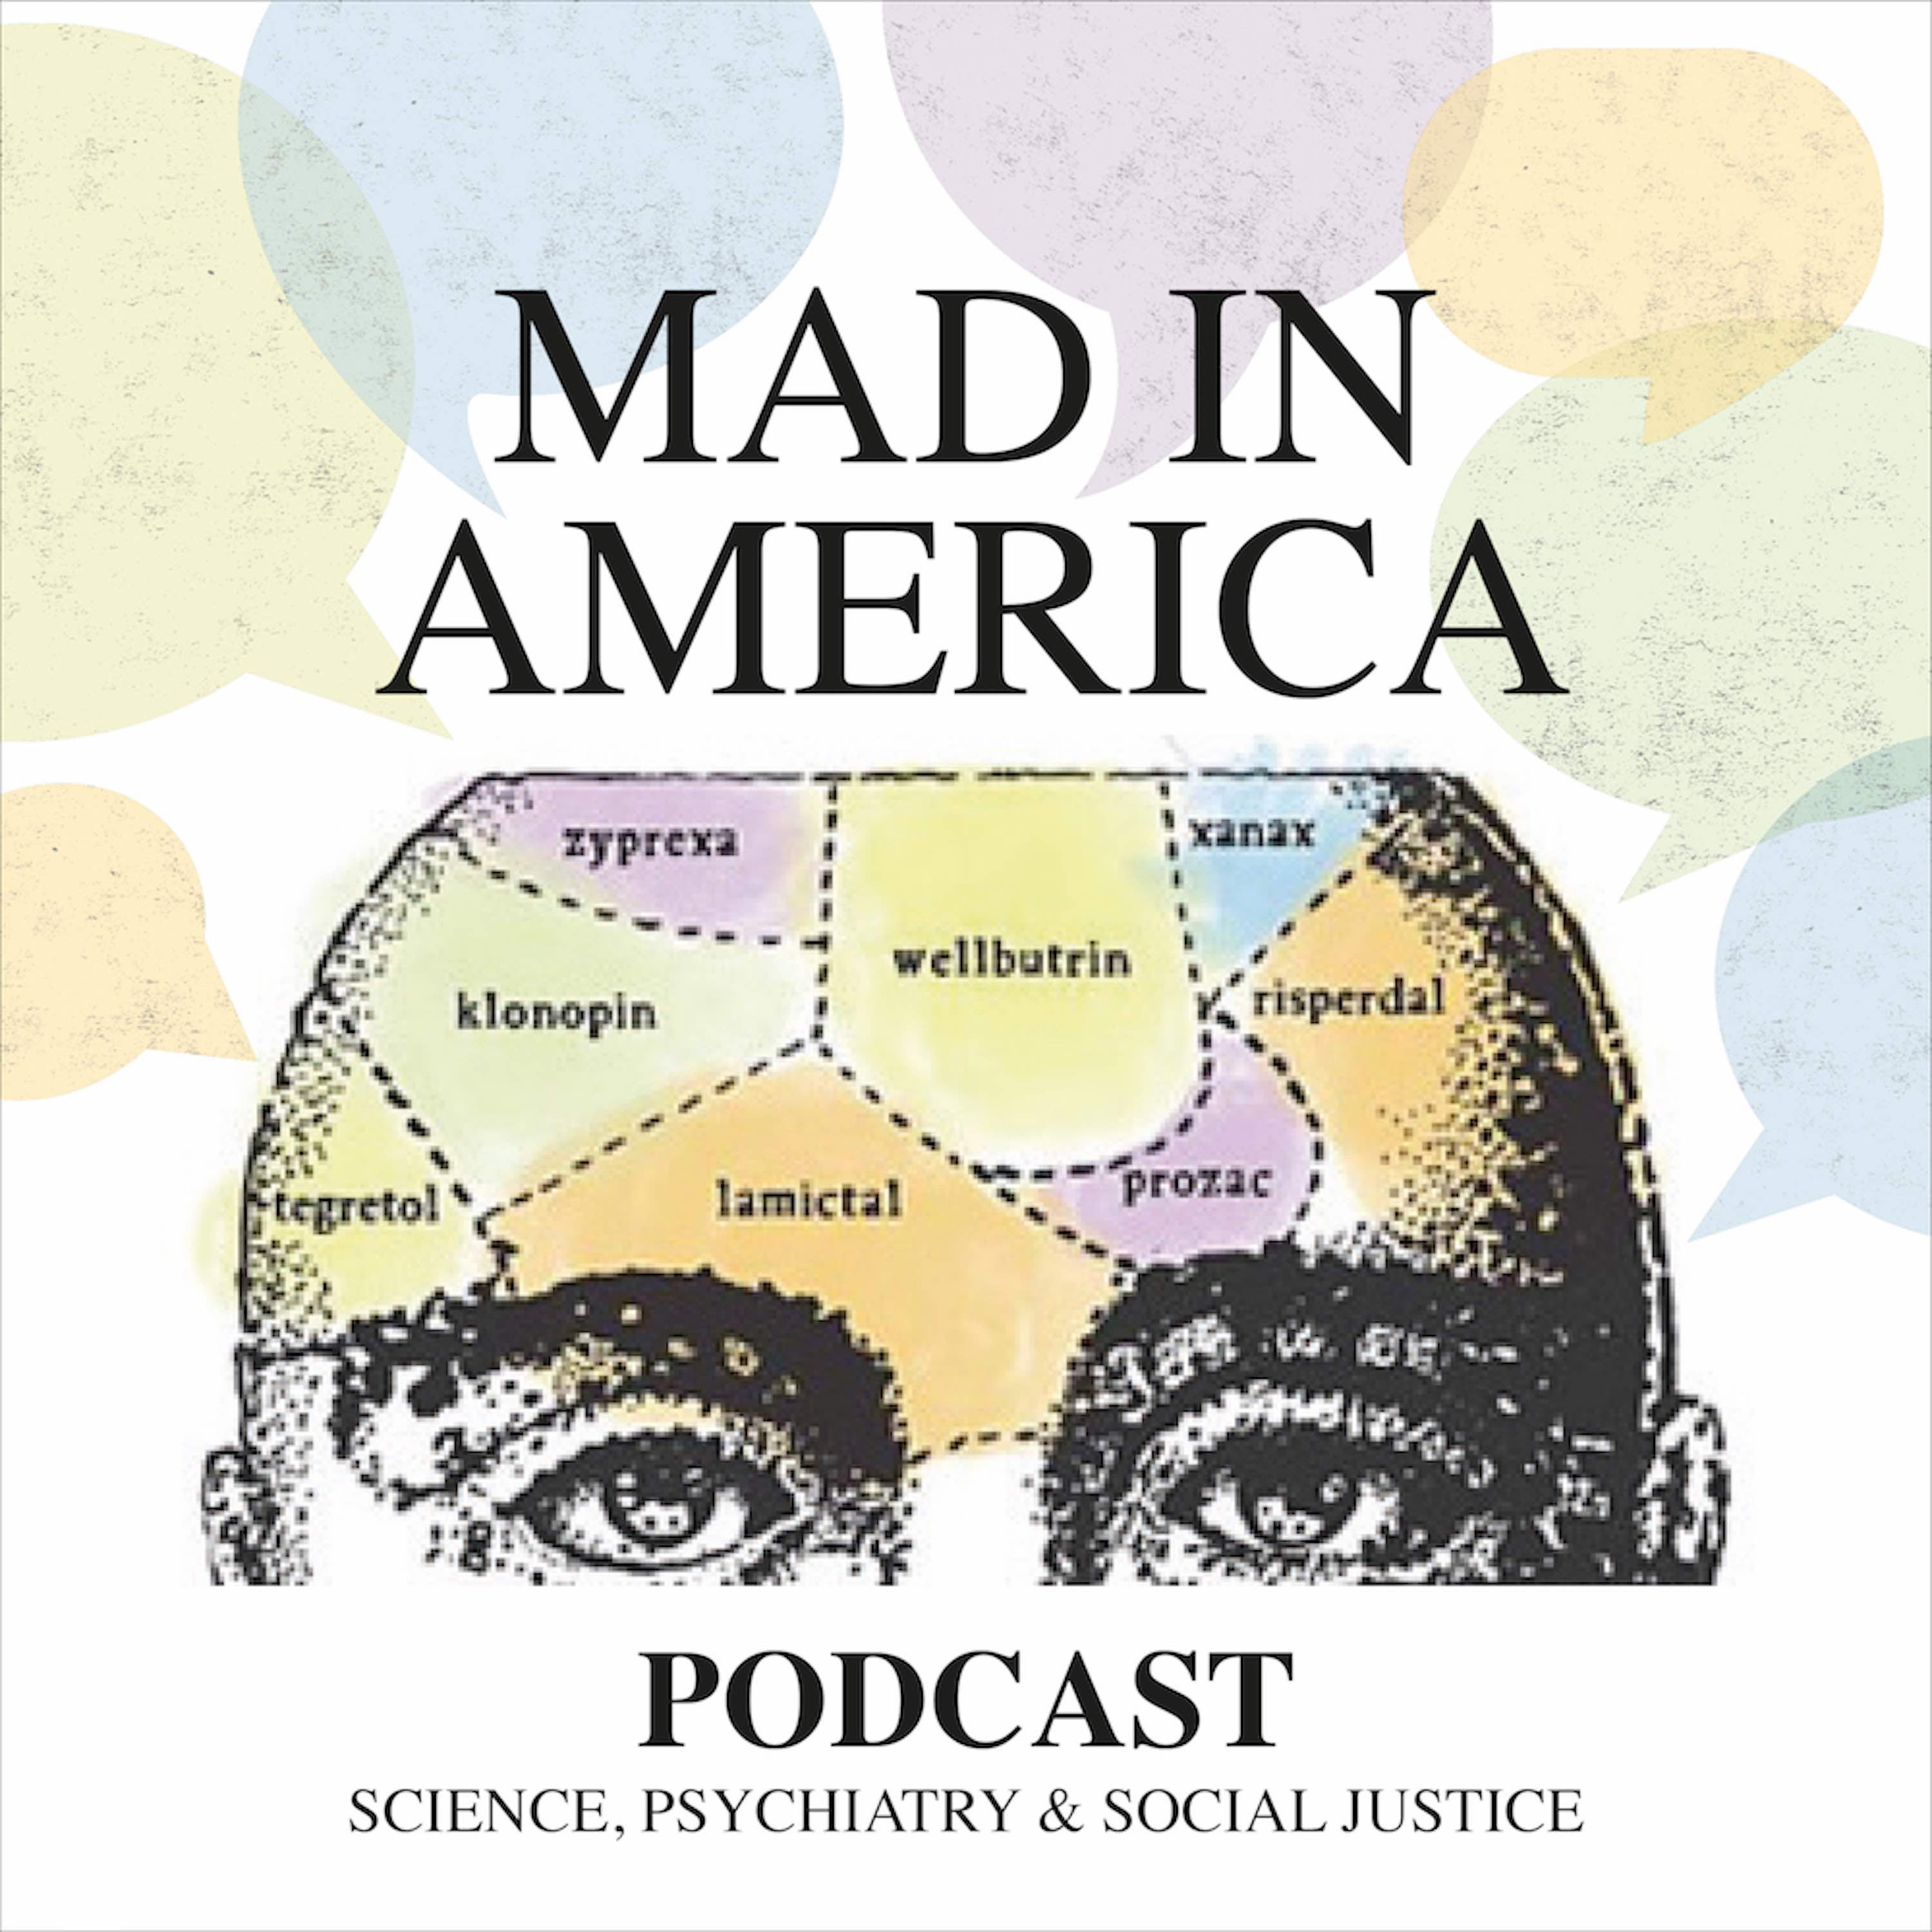 Mad in America: Rethinking Mental Health - Sera Davidow - Intersections Between Sexual Violence and Psychiatric Abuse